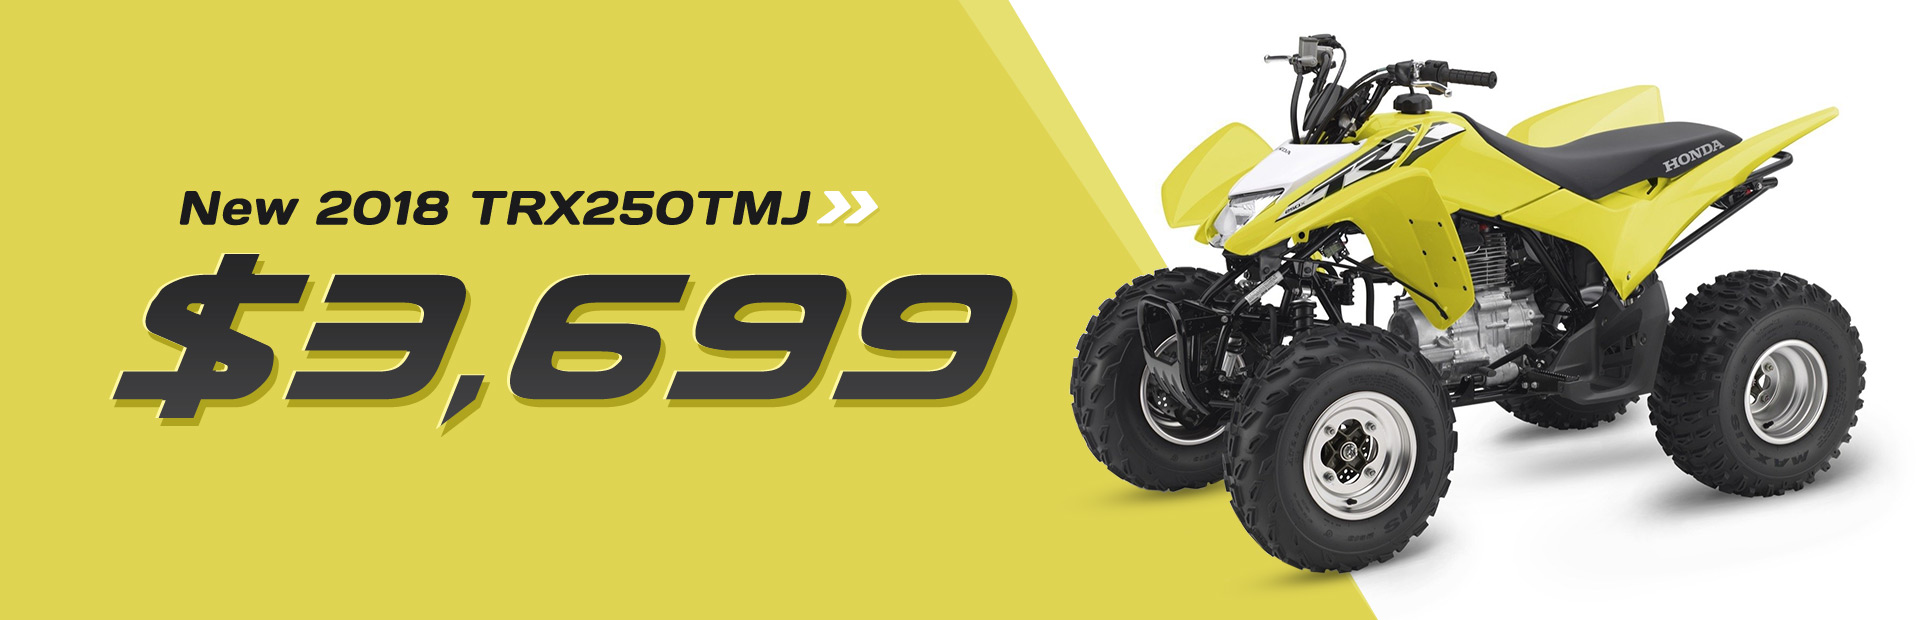 Get the new 2018 Honda TRX250TMJ for just $3,699!